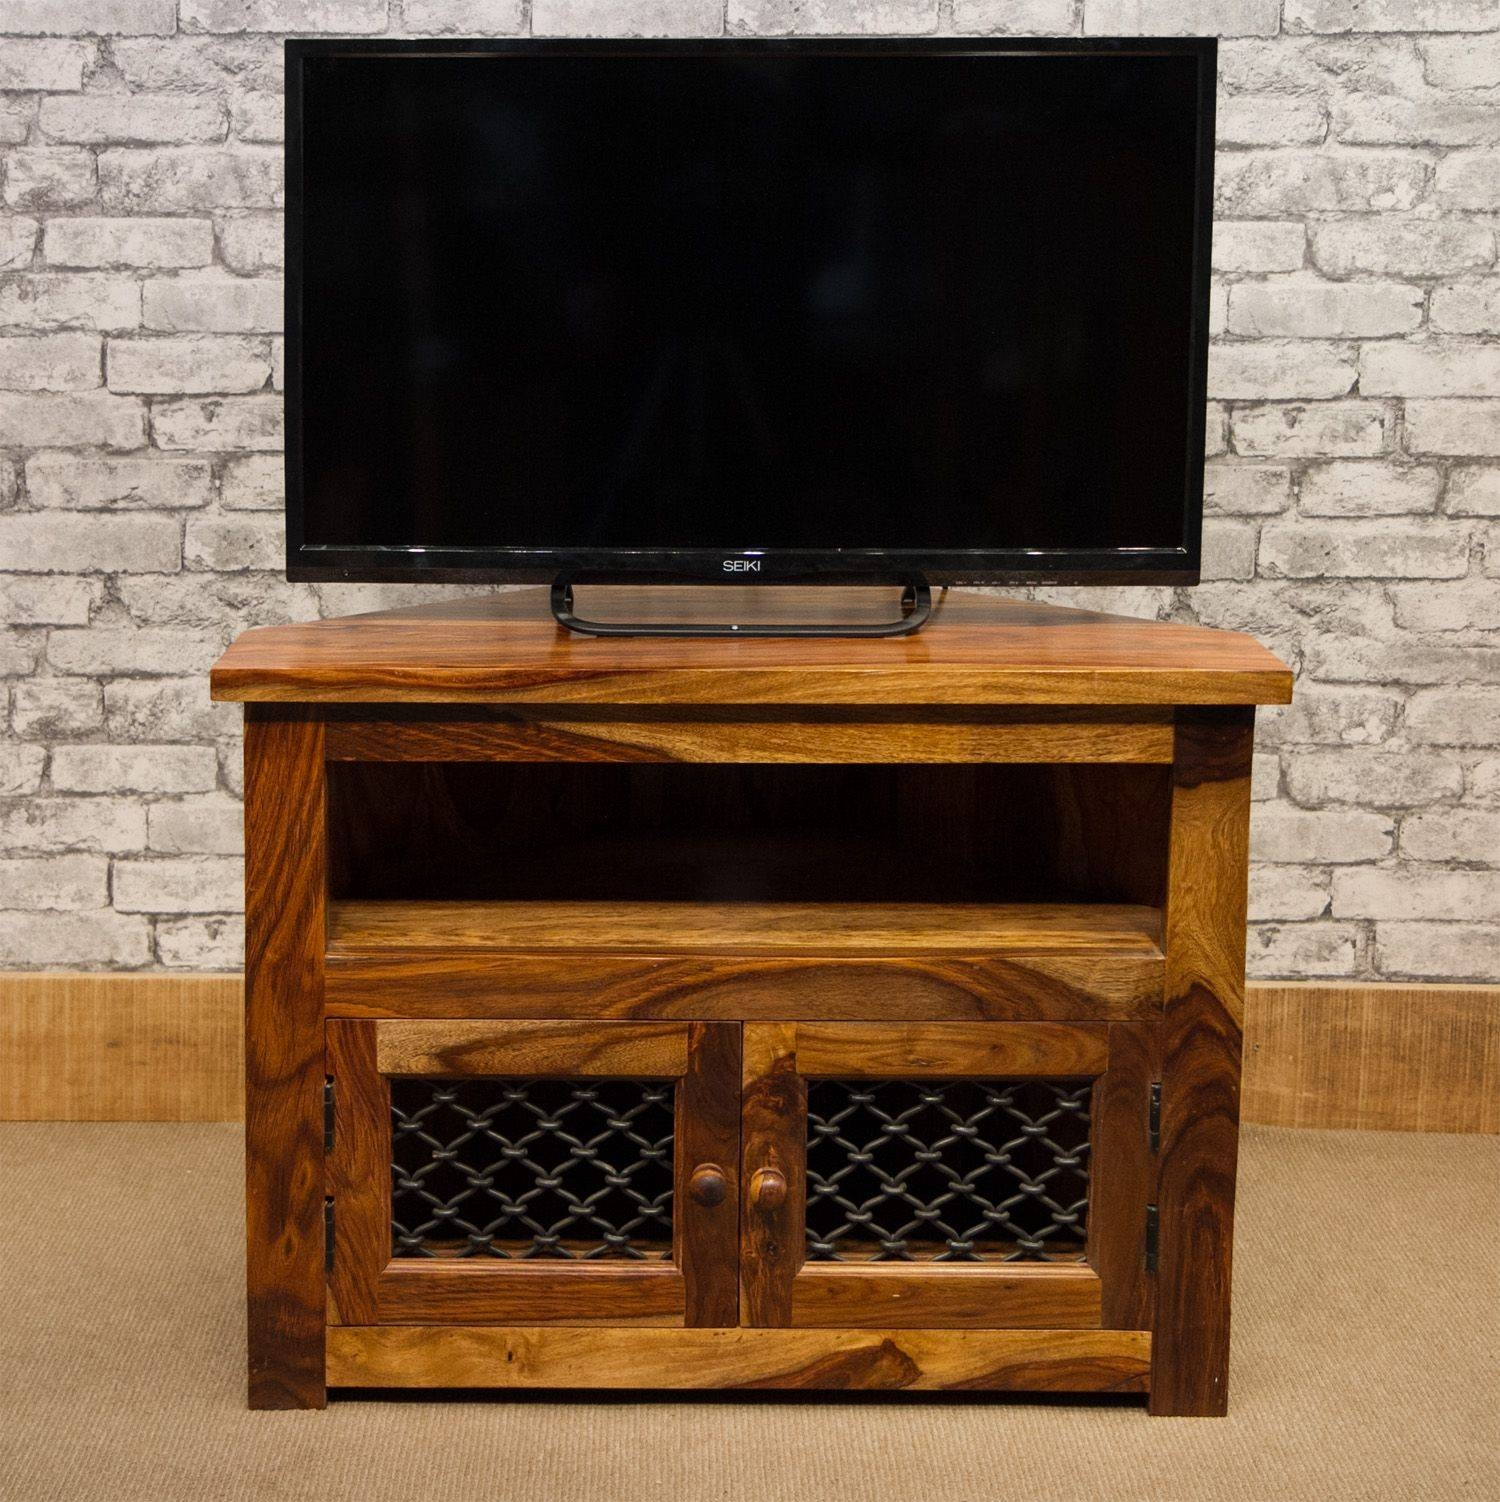 12 Jali 80Cm Corner Tv Cabinet With Jali Doors regarding Jali Tv Cabinets (Image 1 of 15)